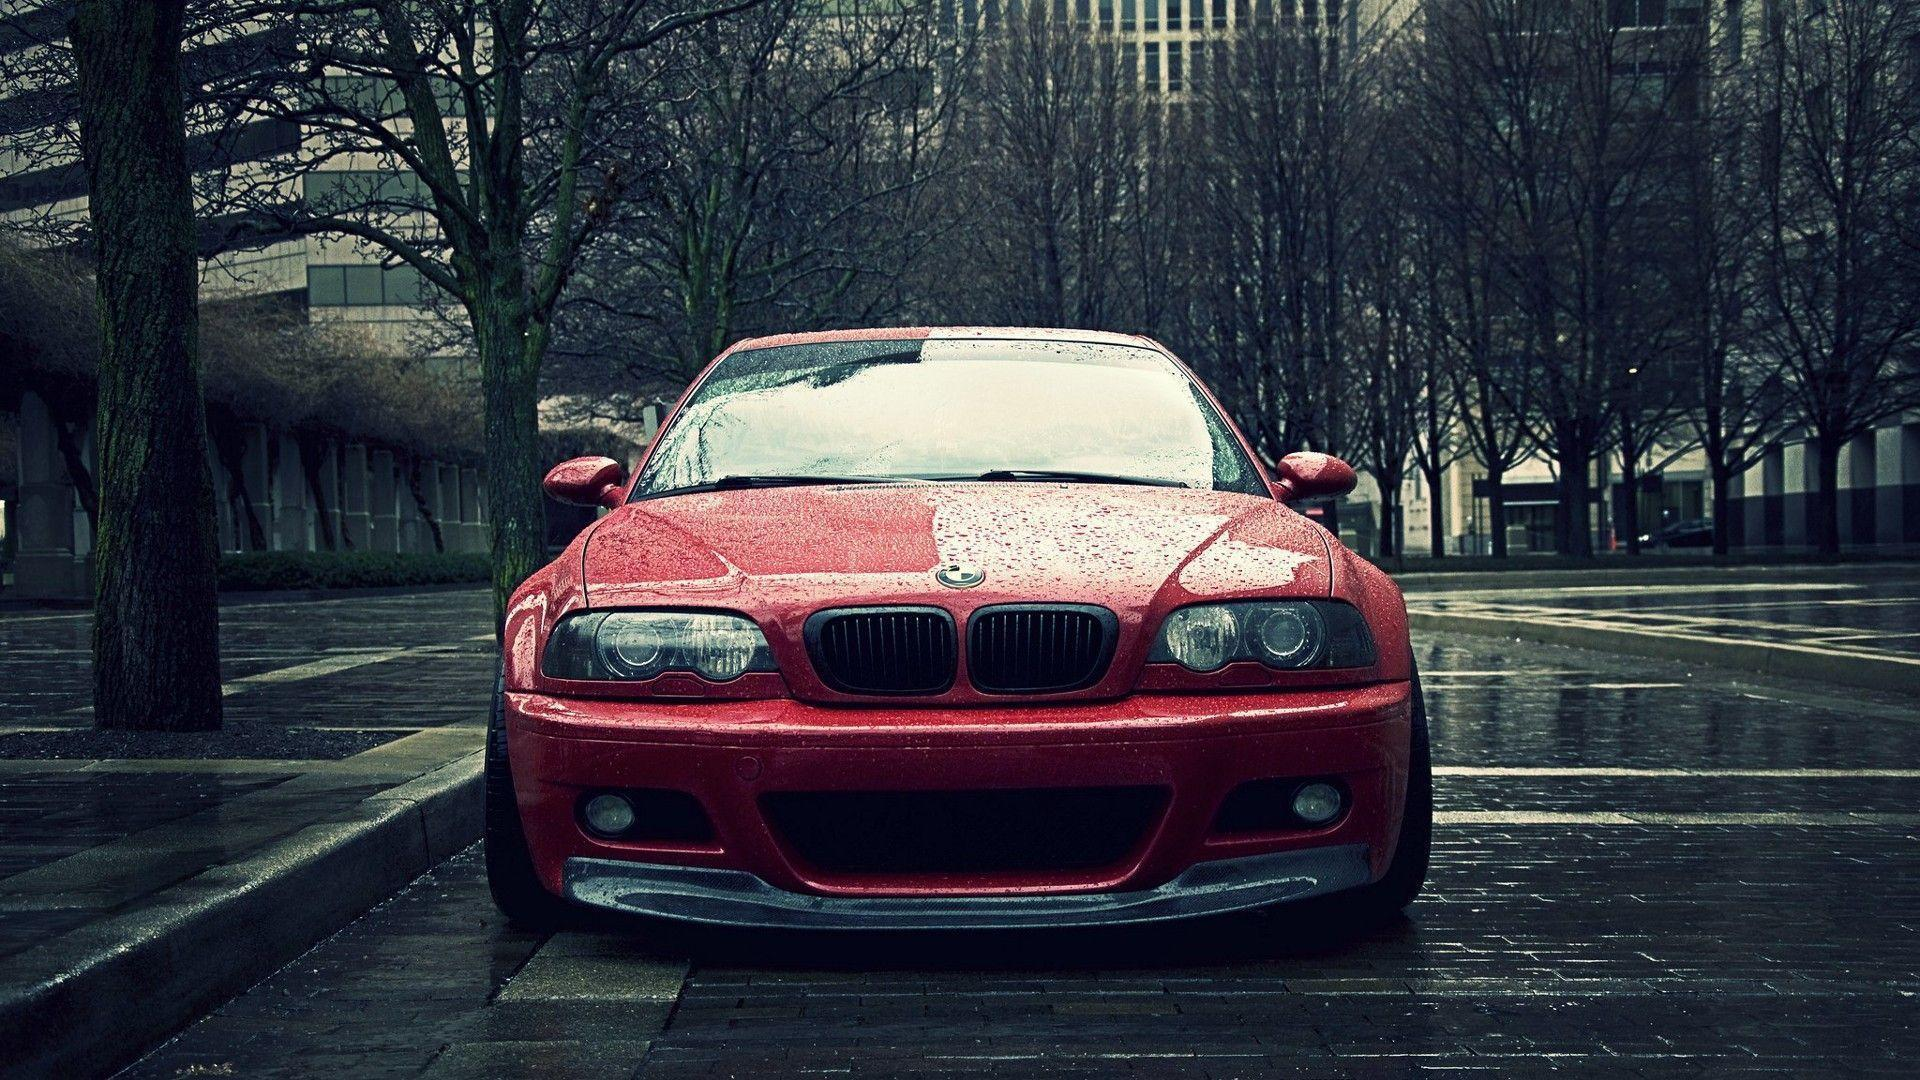 BMW M3 E46 Stanced Wallpapers 1080p